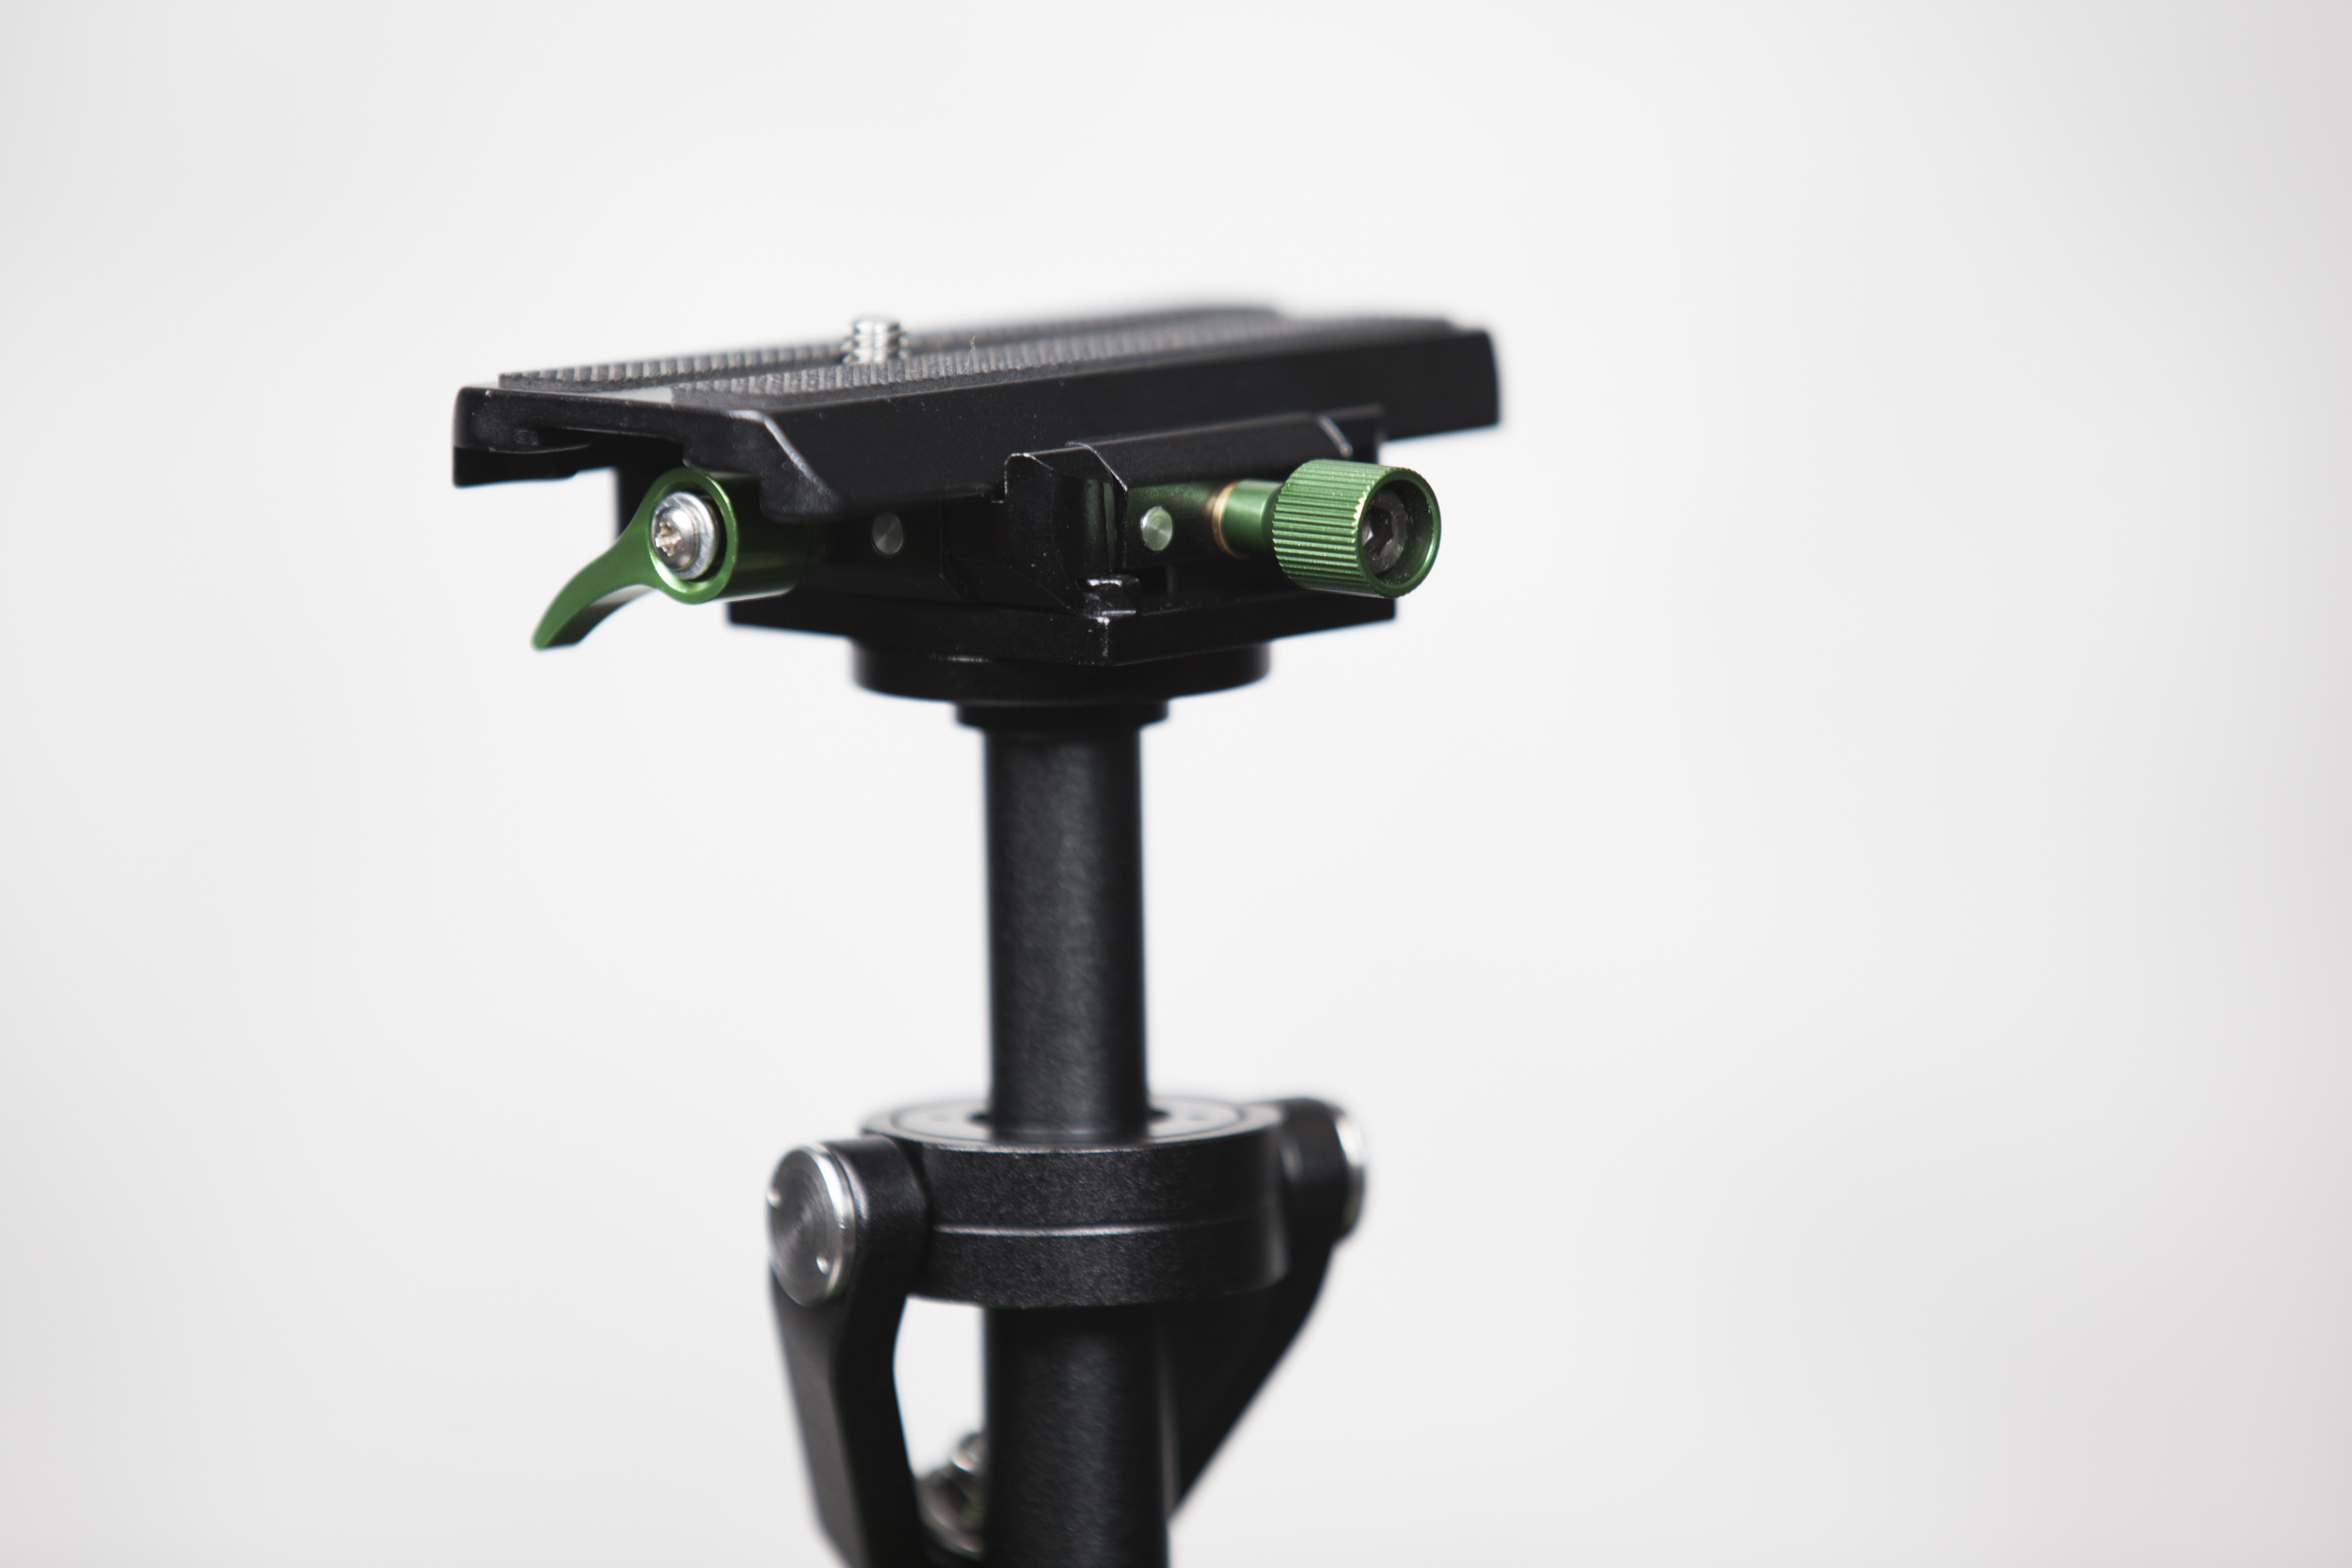 Review: Imorden S-40A Stabilizer